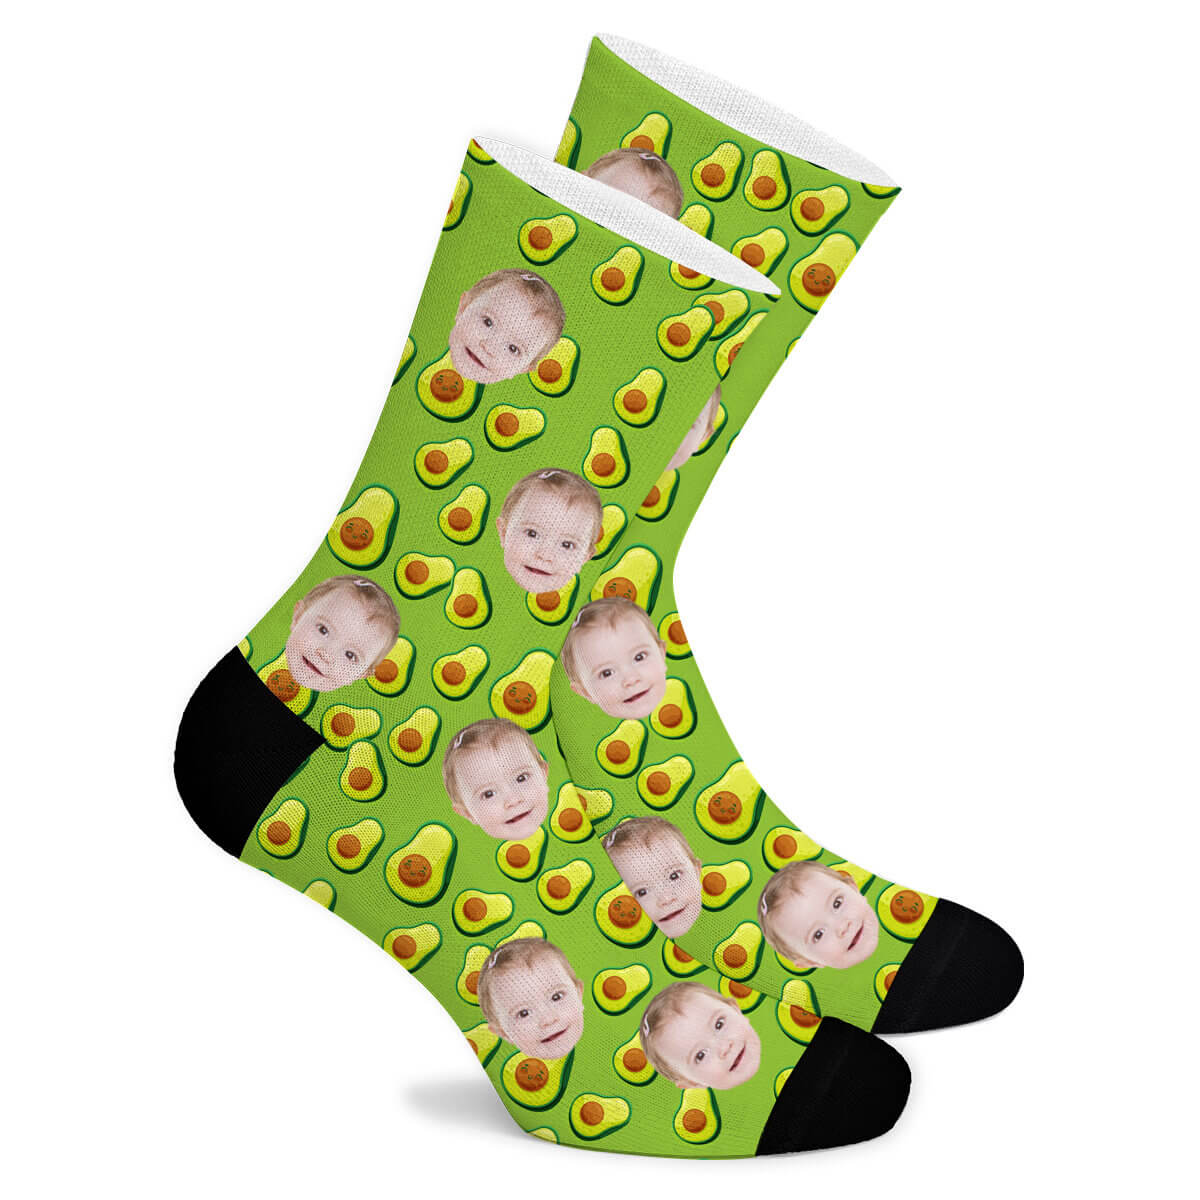 Happy Avocado Custom Socks - Make Face Socks